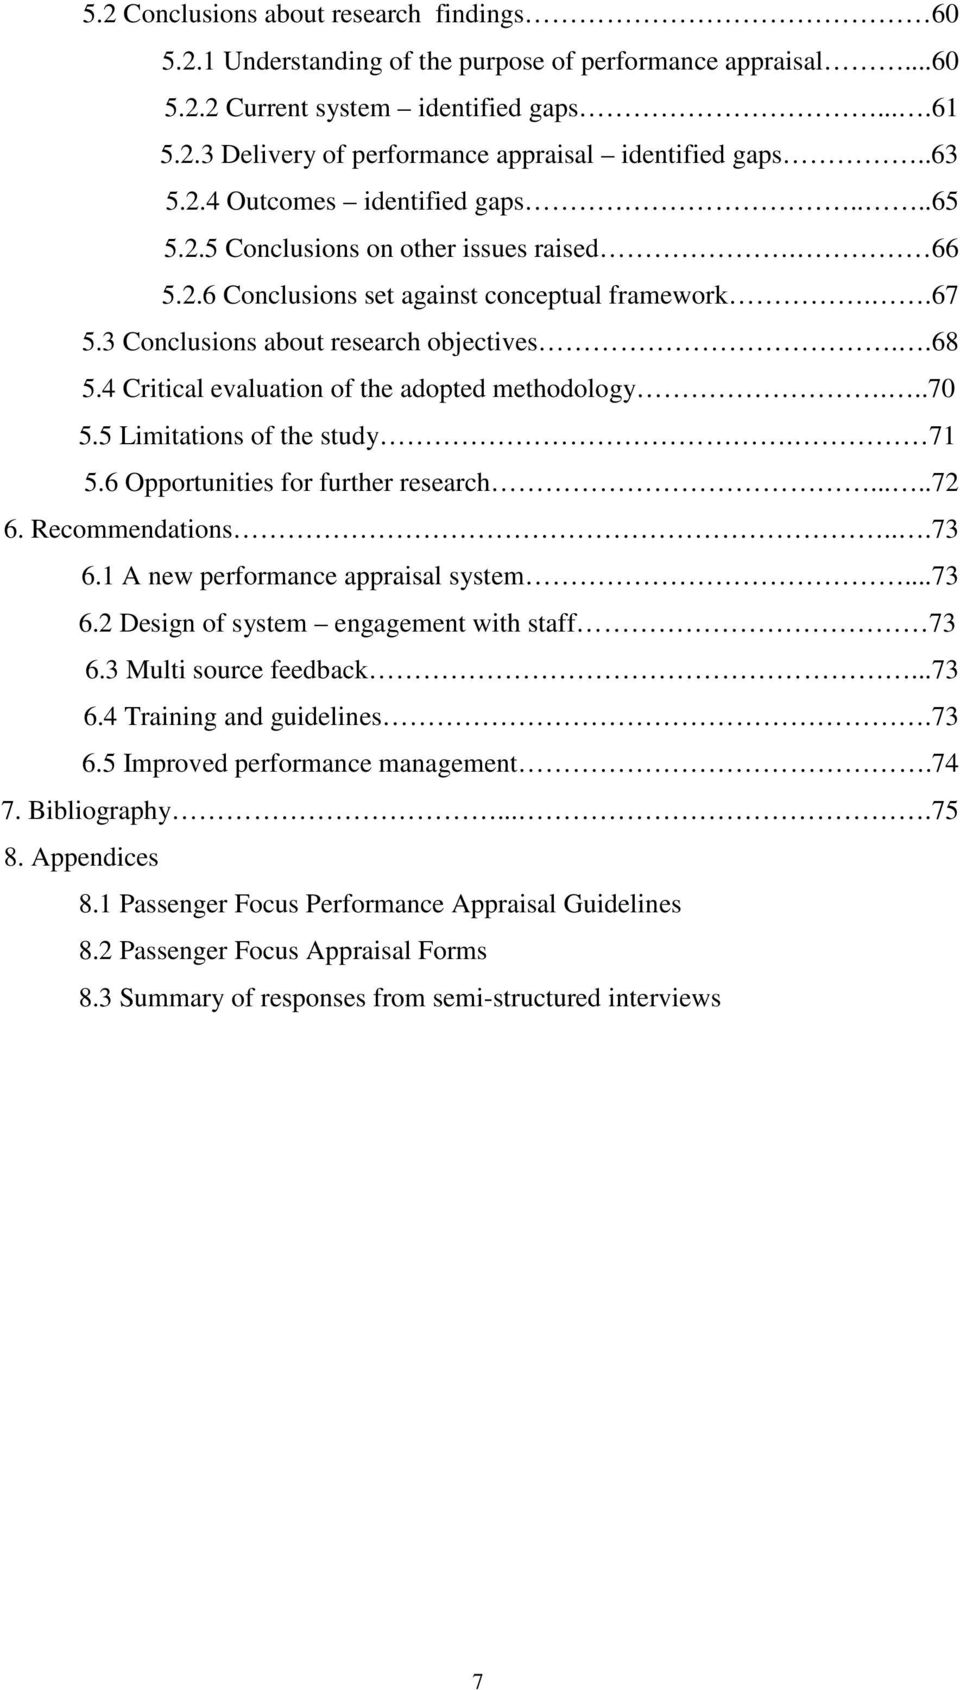 4 Critical evaluation of the adopted methodology...70 5.5 Limitations of the study. 71 5.6 Opportunities for further research.....72 6. Recommendations...73 6.1 A new performance appraisal system.